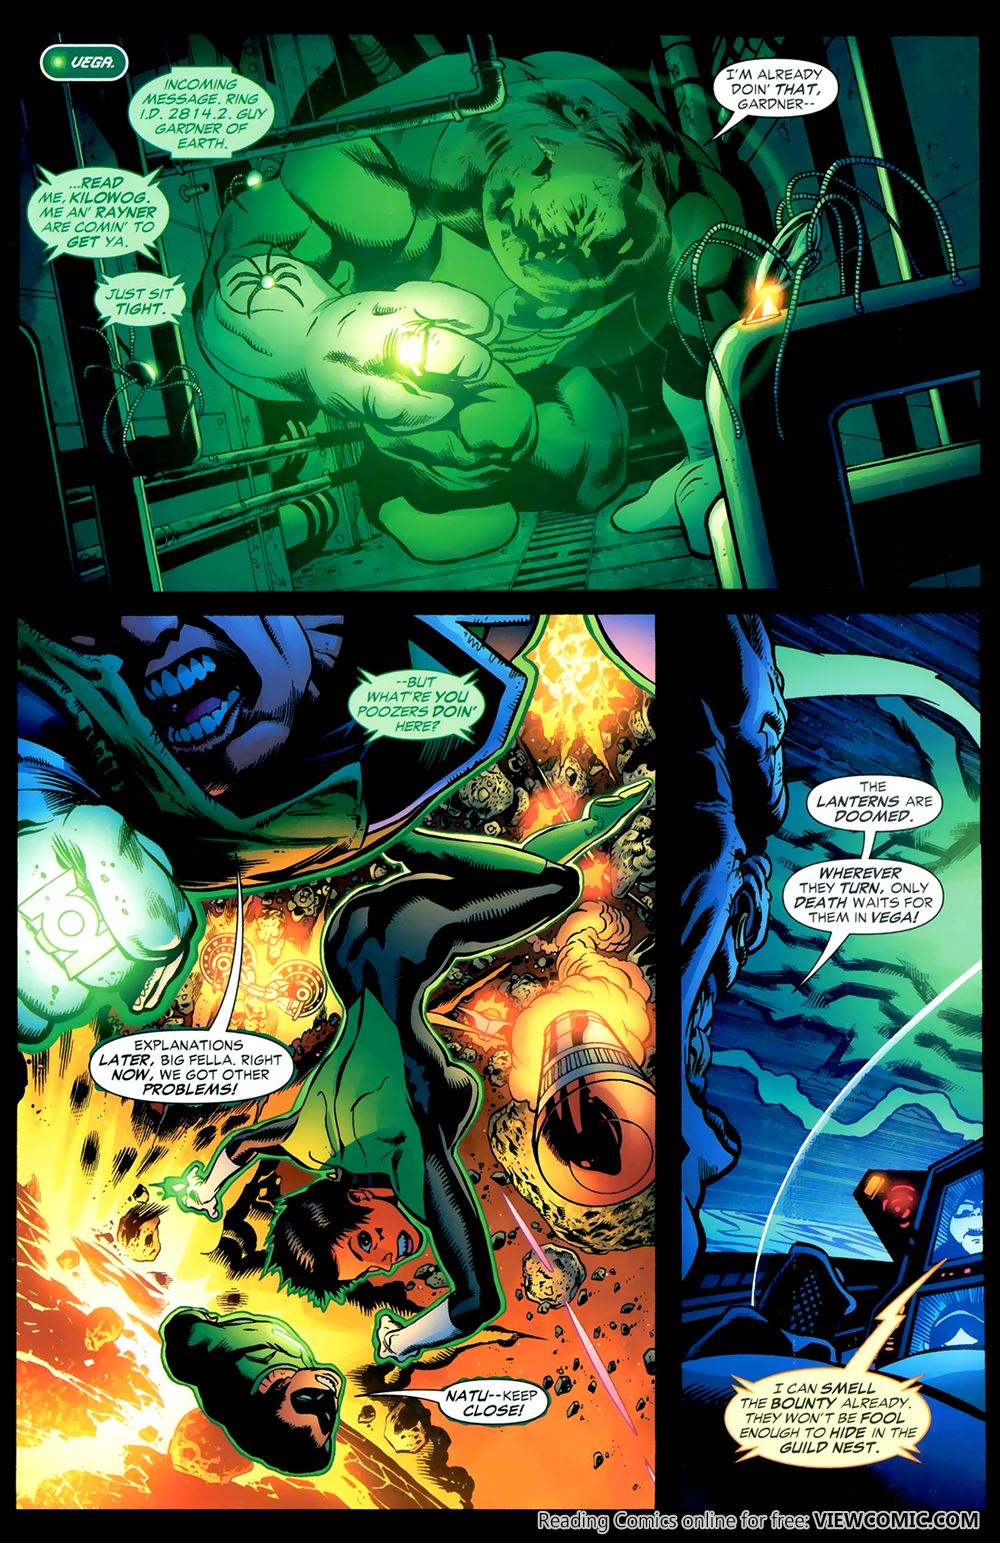 green lantern corps recharge 04 of 5 2006 viewcomic reading